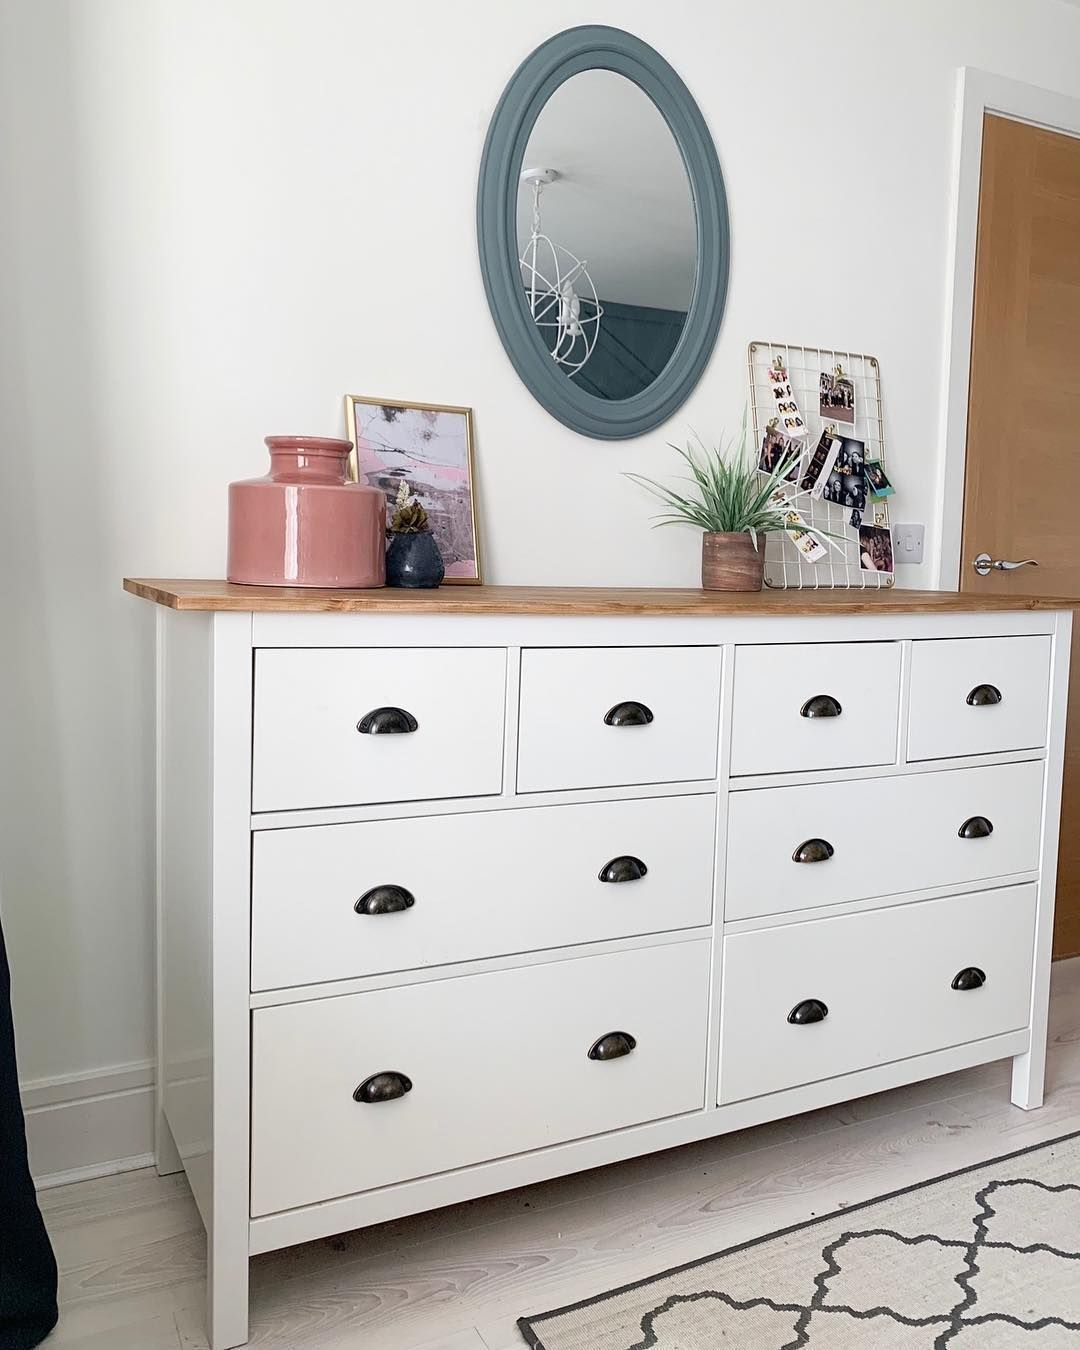 Latest Pic Ruth On Instagram A Saturday Morning Ikea Hack This Is The Shiny White Ik In 2020 Chest Of Drawers Decor Bedroom Chest Of Drawers Ikea Chest Of Drawers